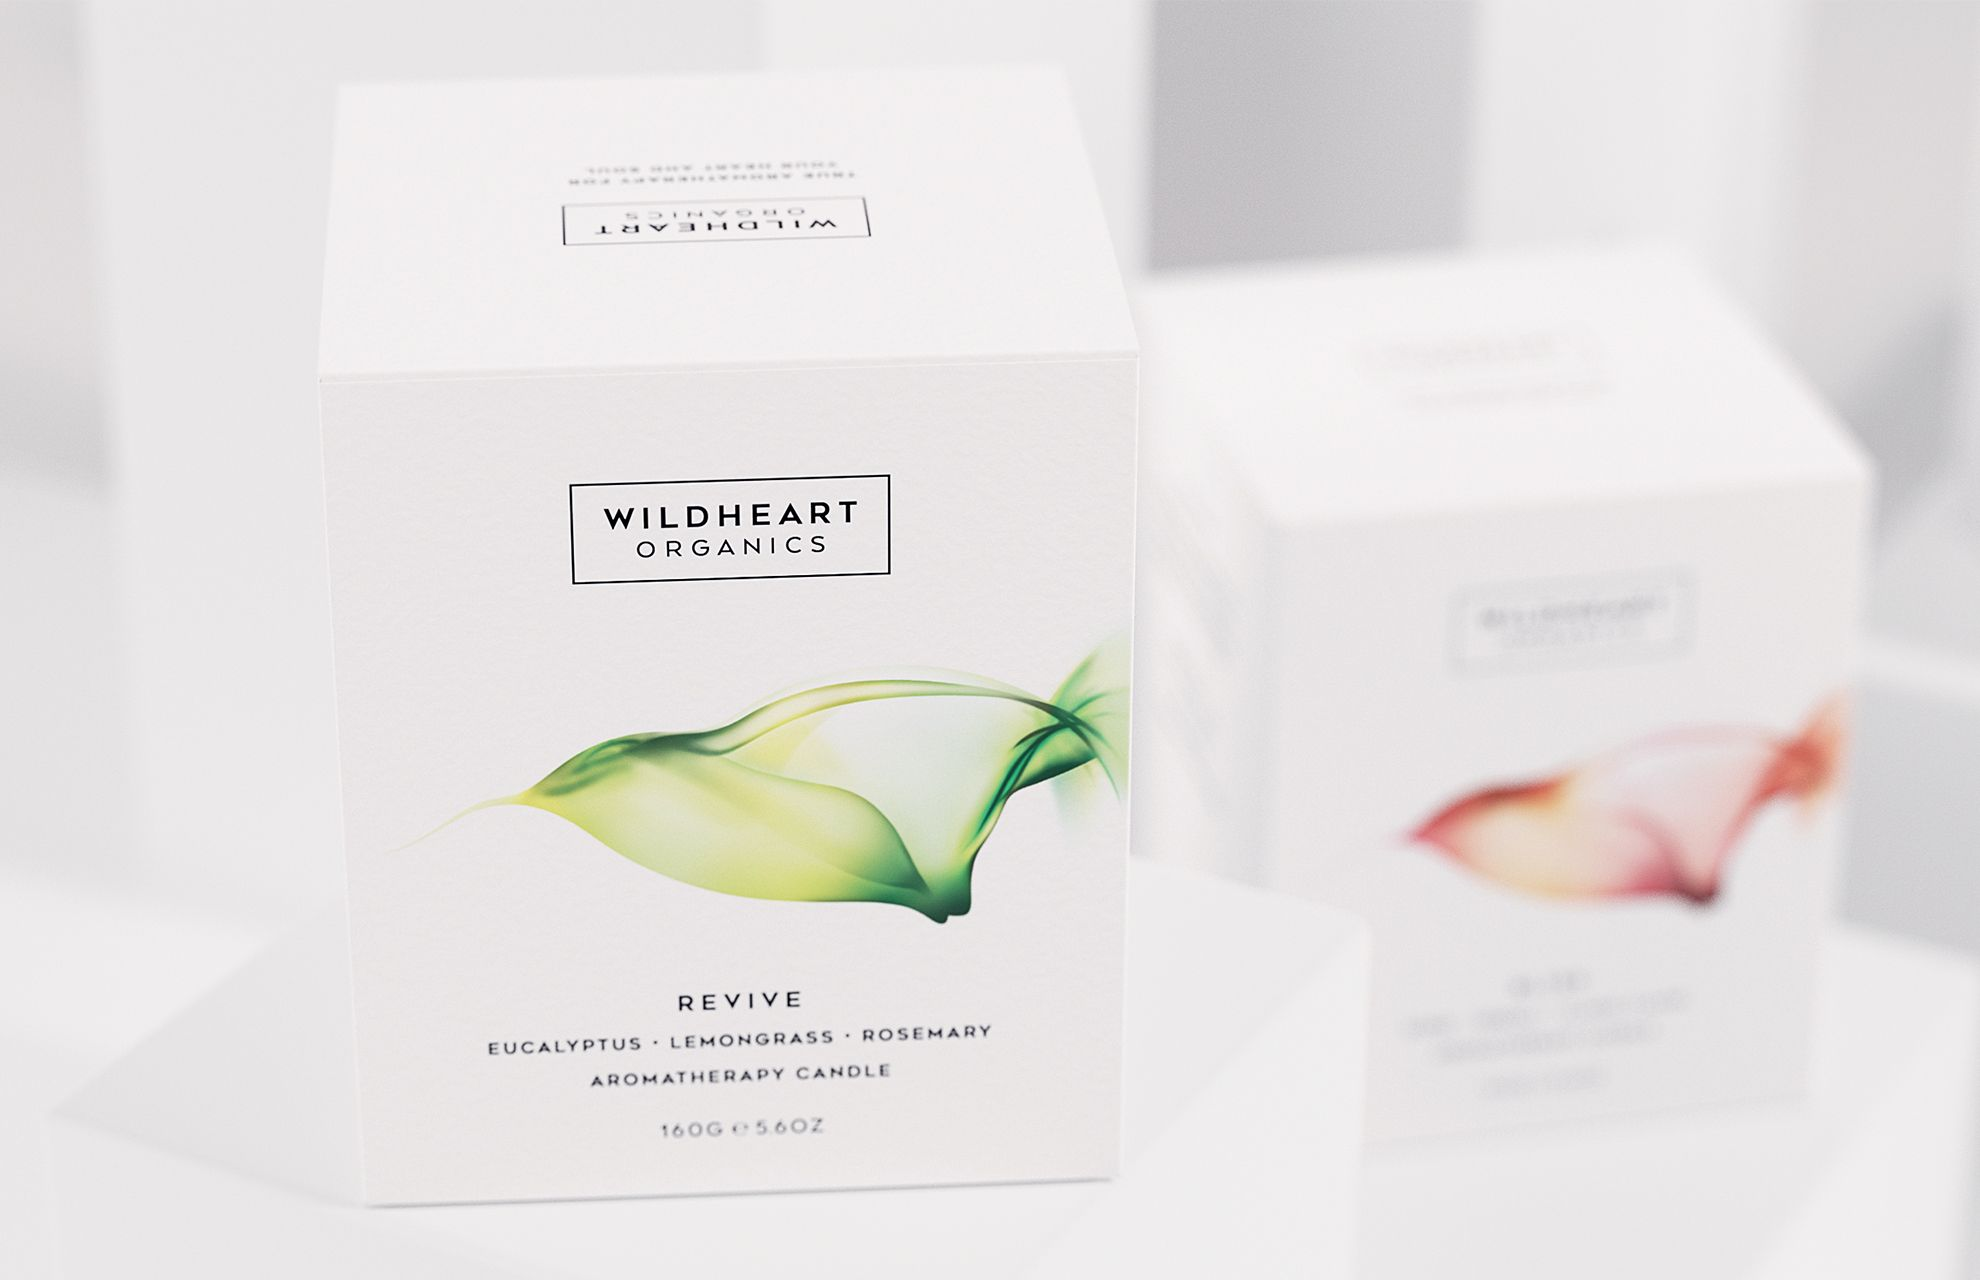 Wildheart Organics Branding Packaging